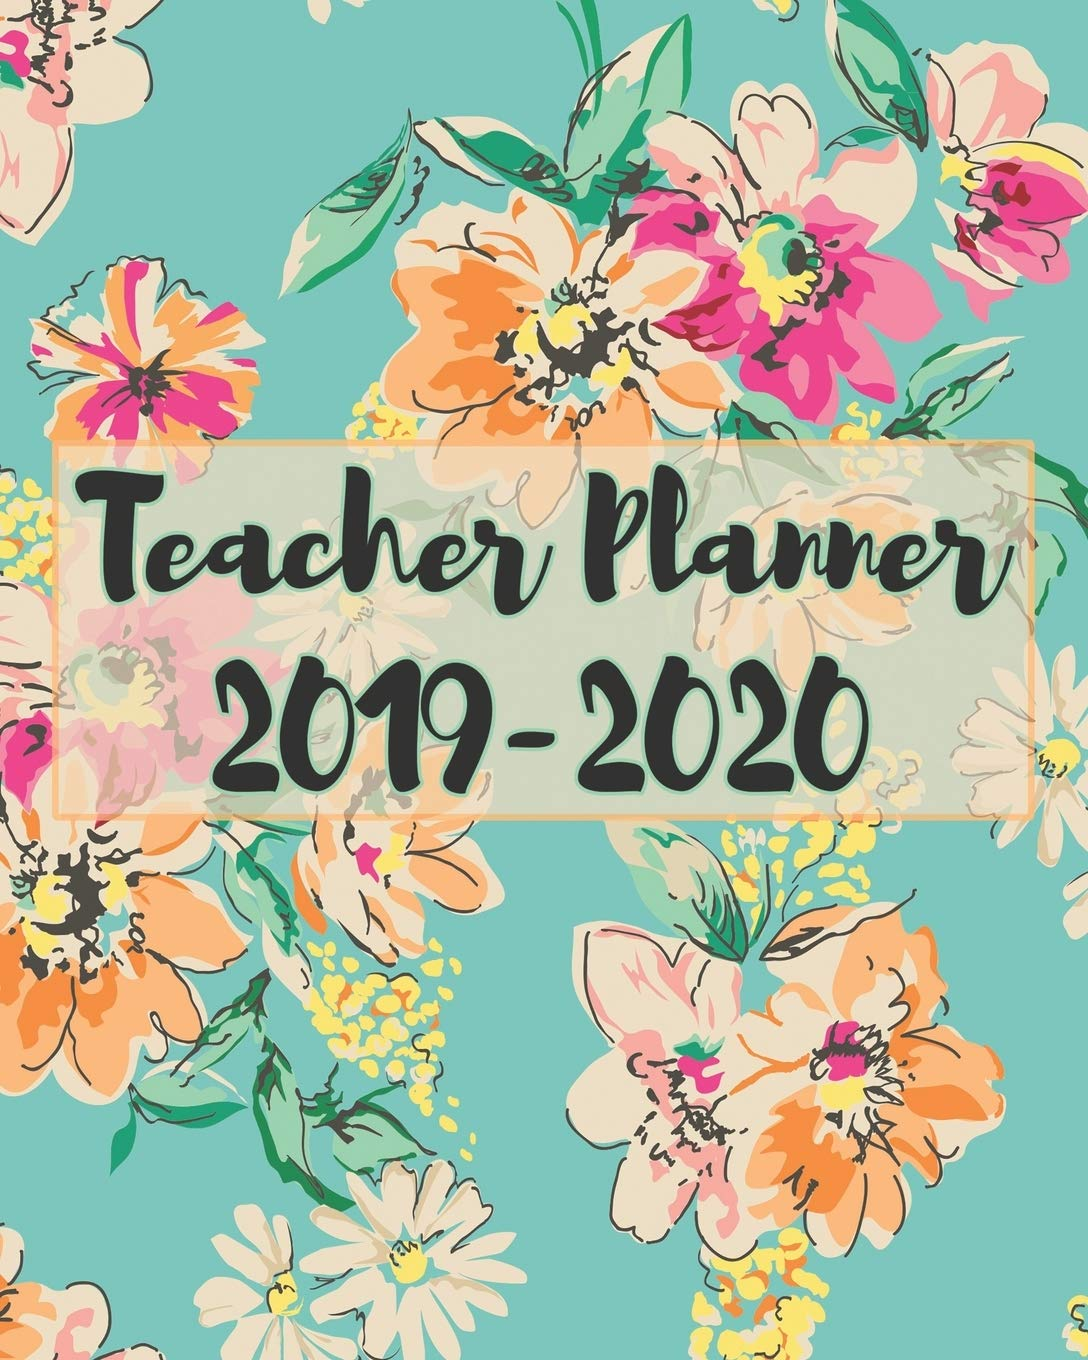 Teacher Planner 2019-2020 - Teacher Agenda For Class Organization ...